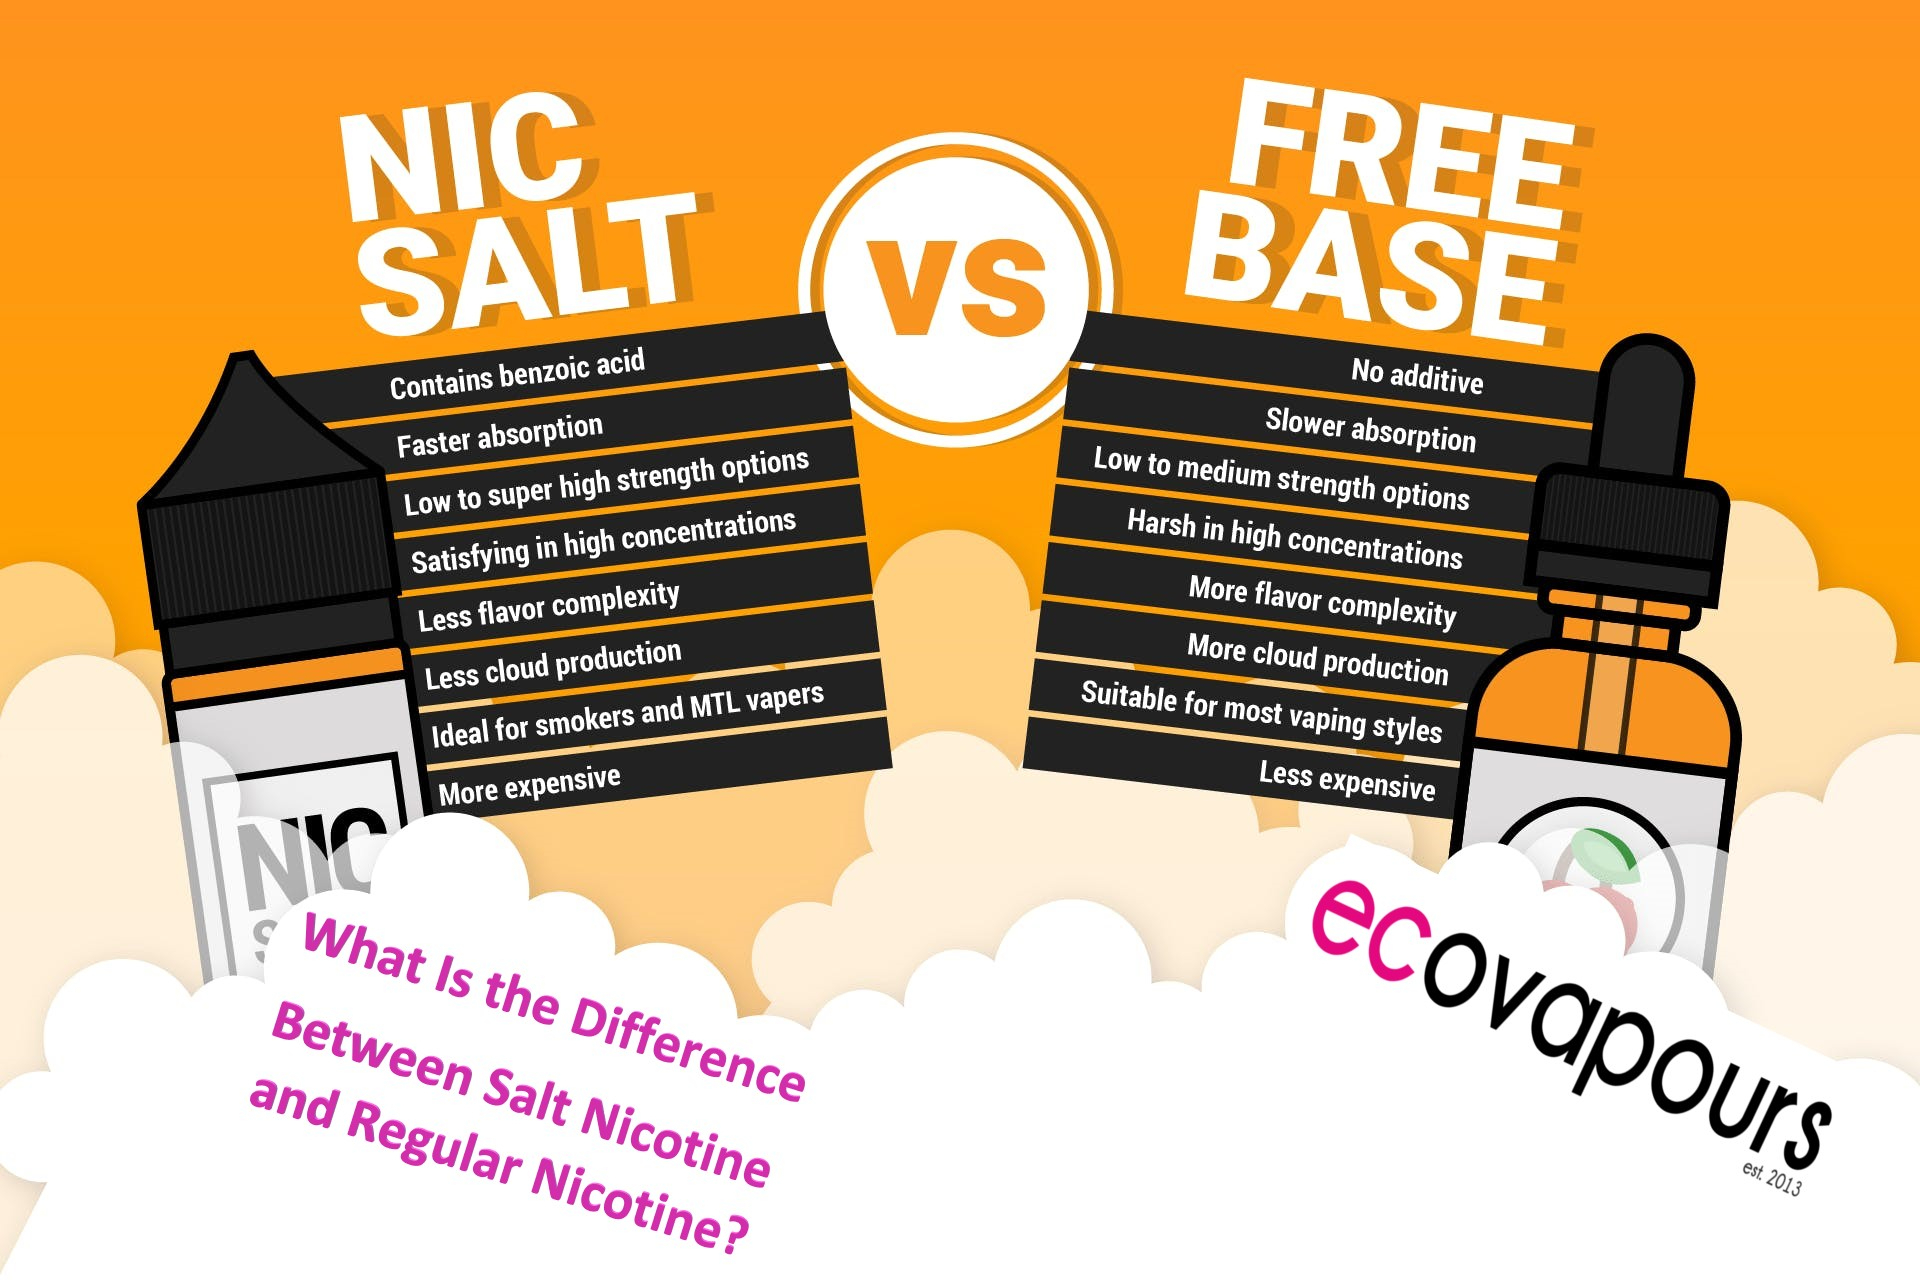 What Is the Difference Between Salt Nicotine and Regular Nicotine? image